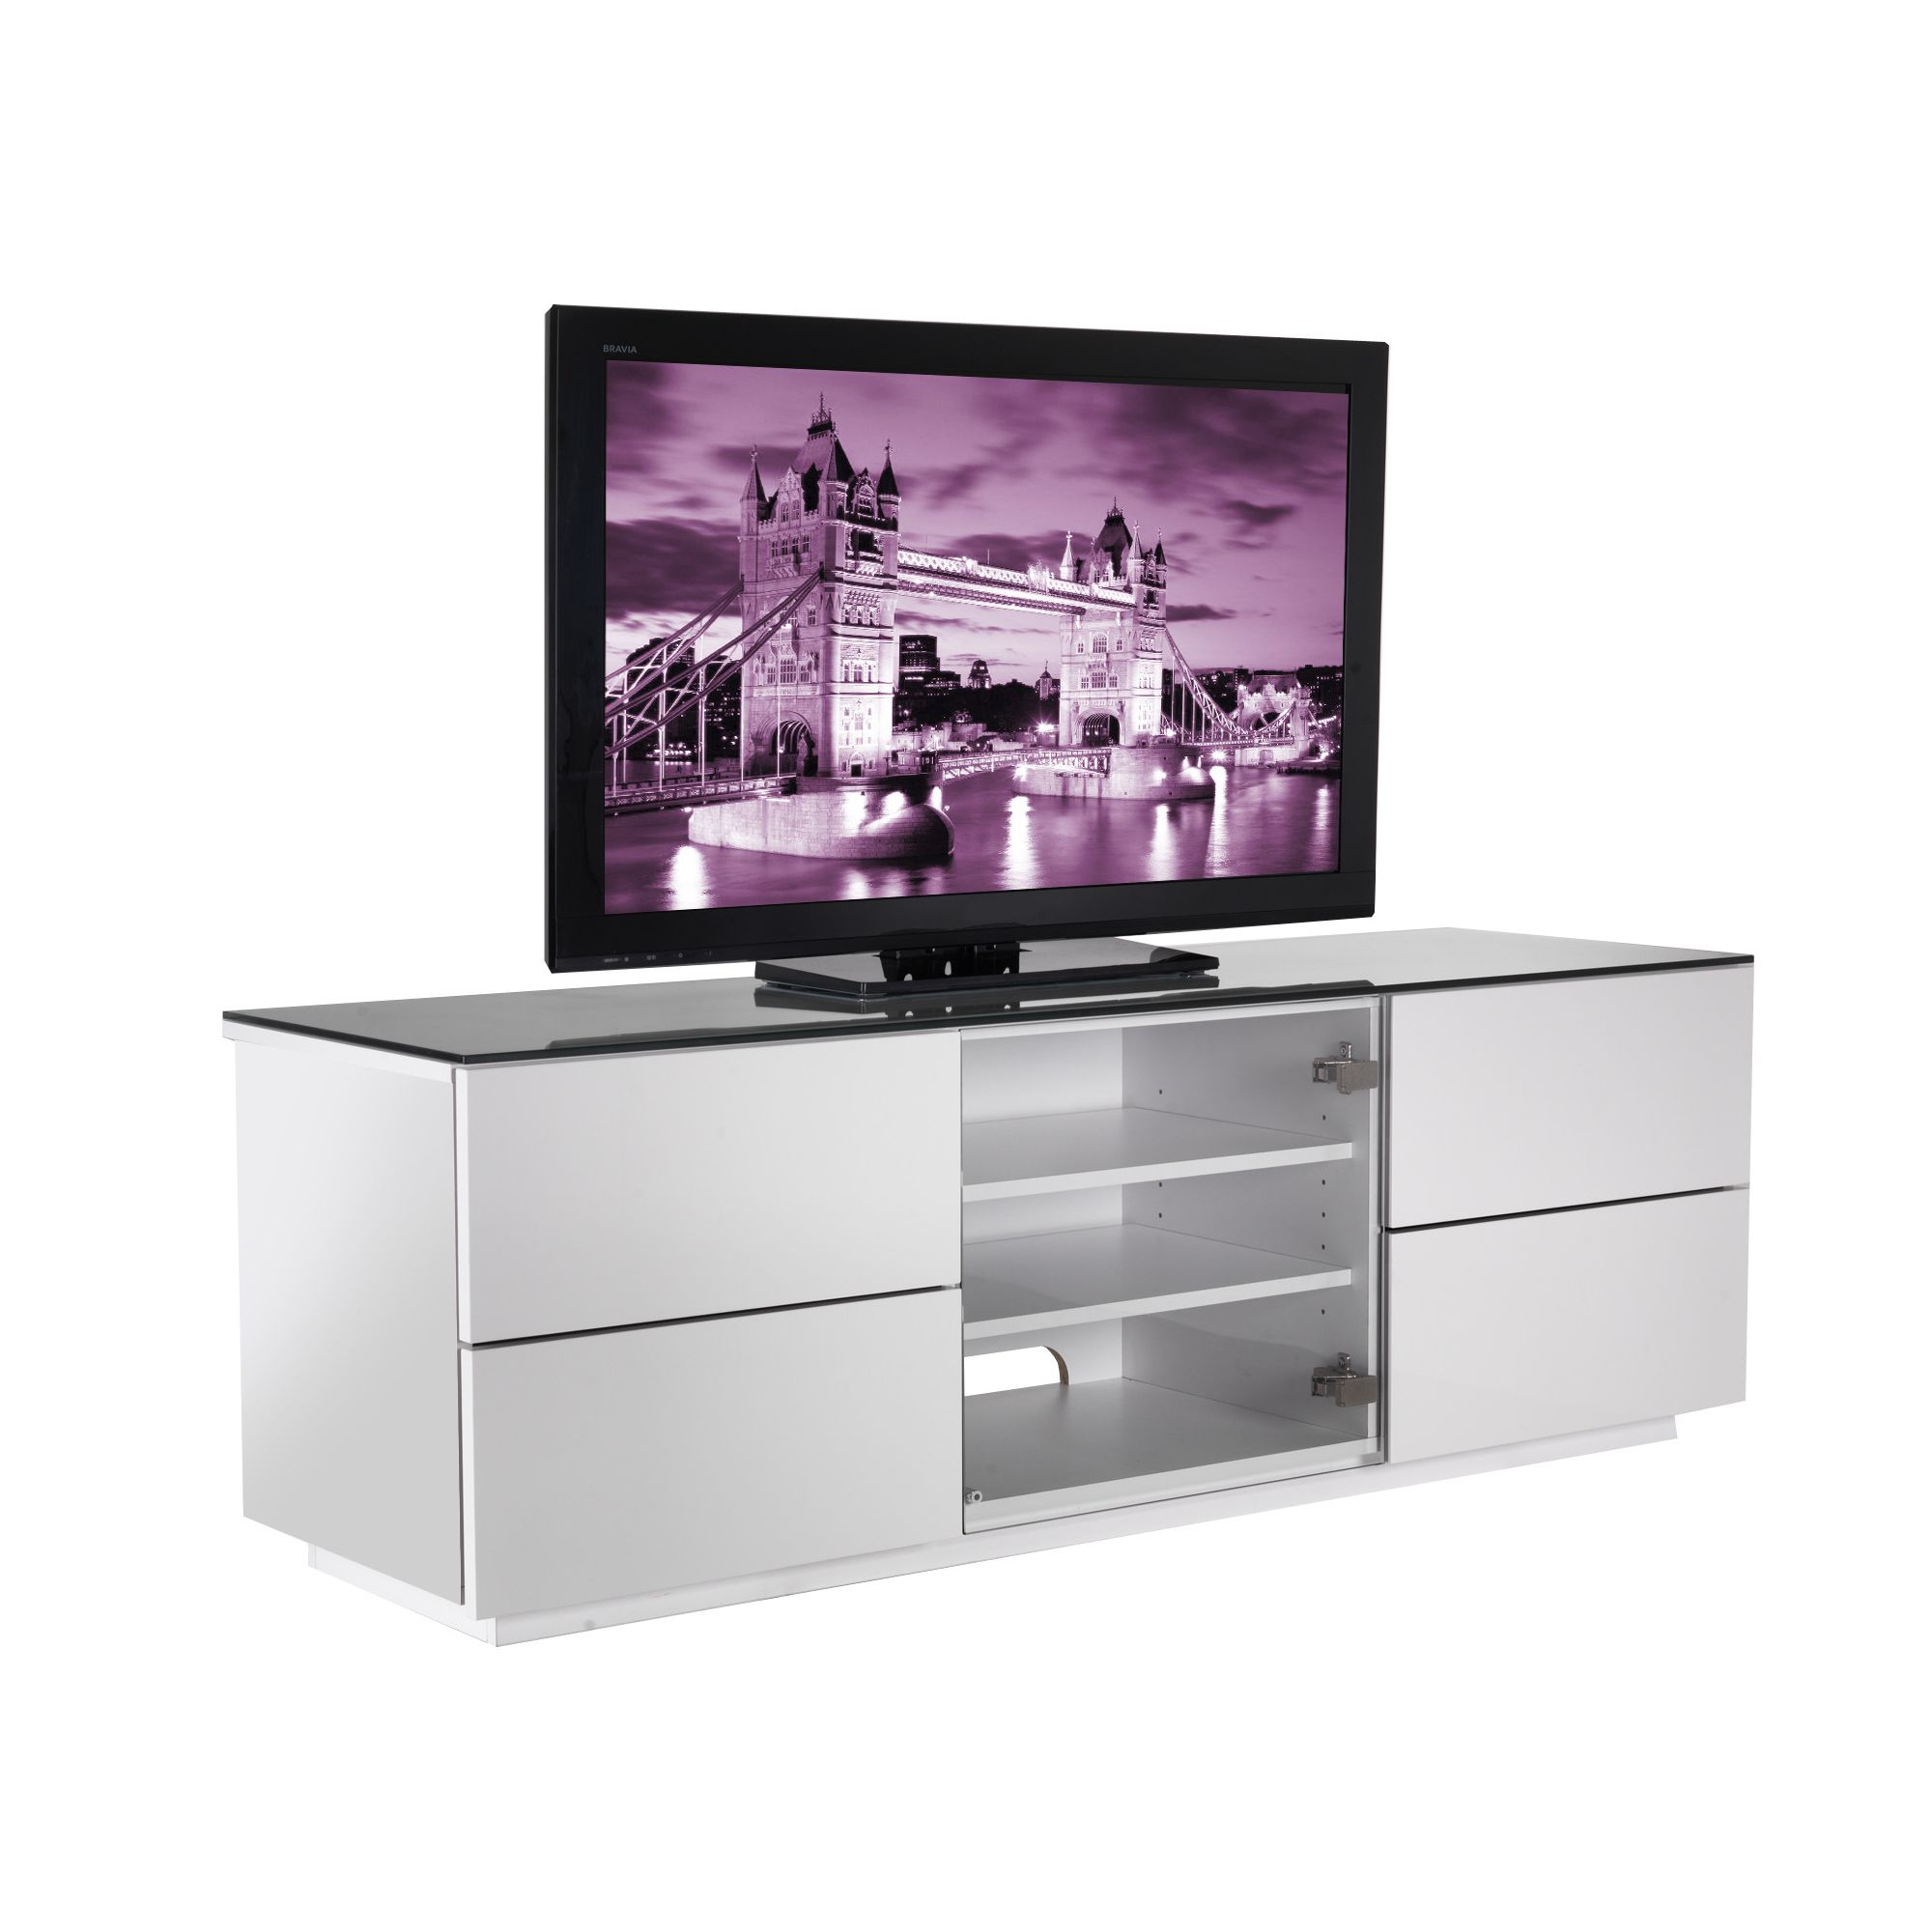 UK-CF City Scape London TV Stand - White at Tesco Direct